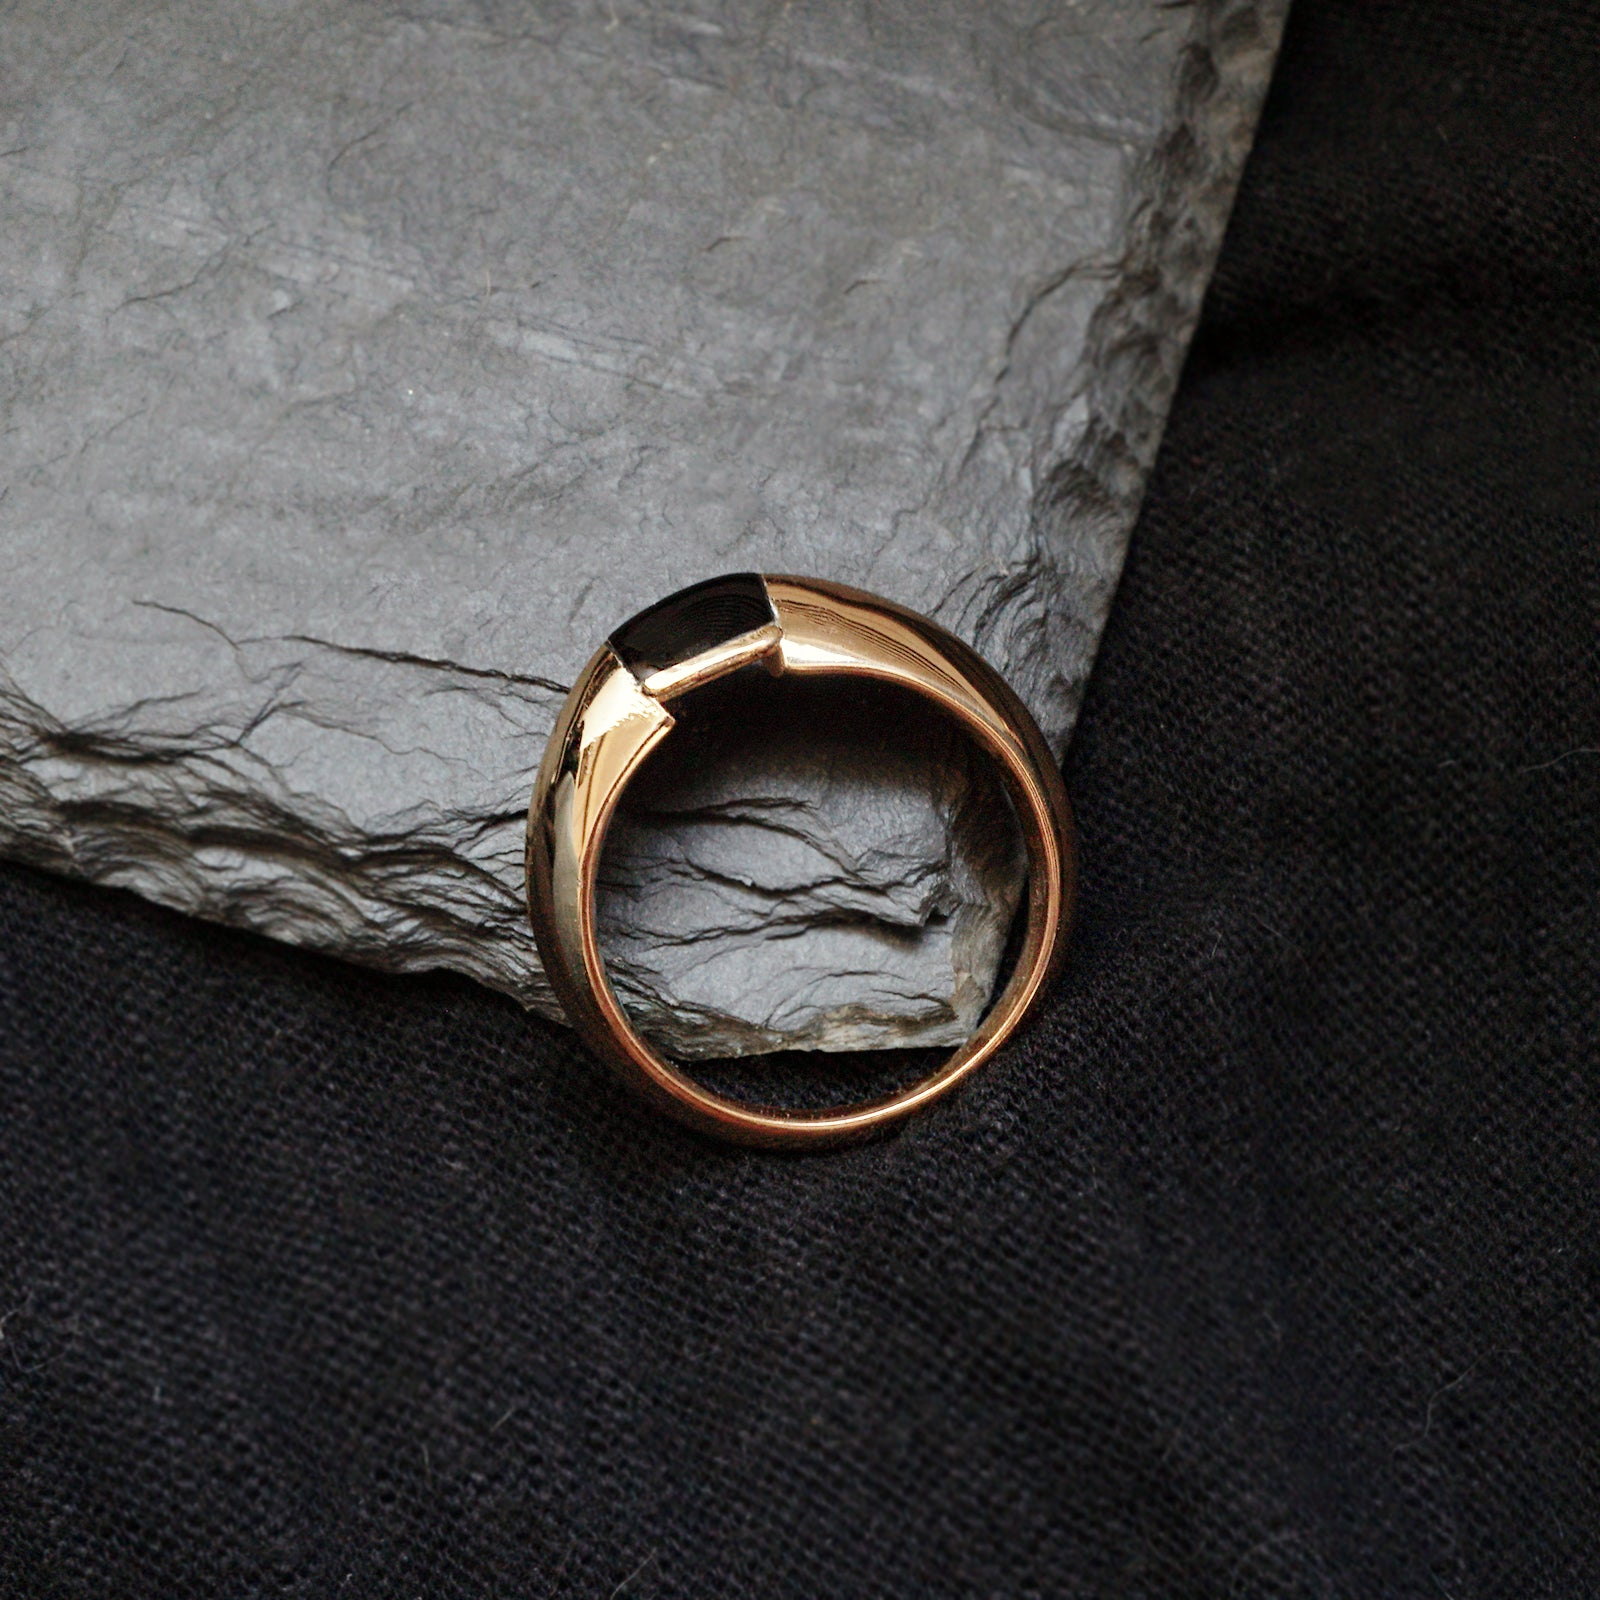 Black Onyx Bevel Ring, 7mm